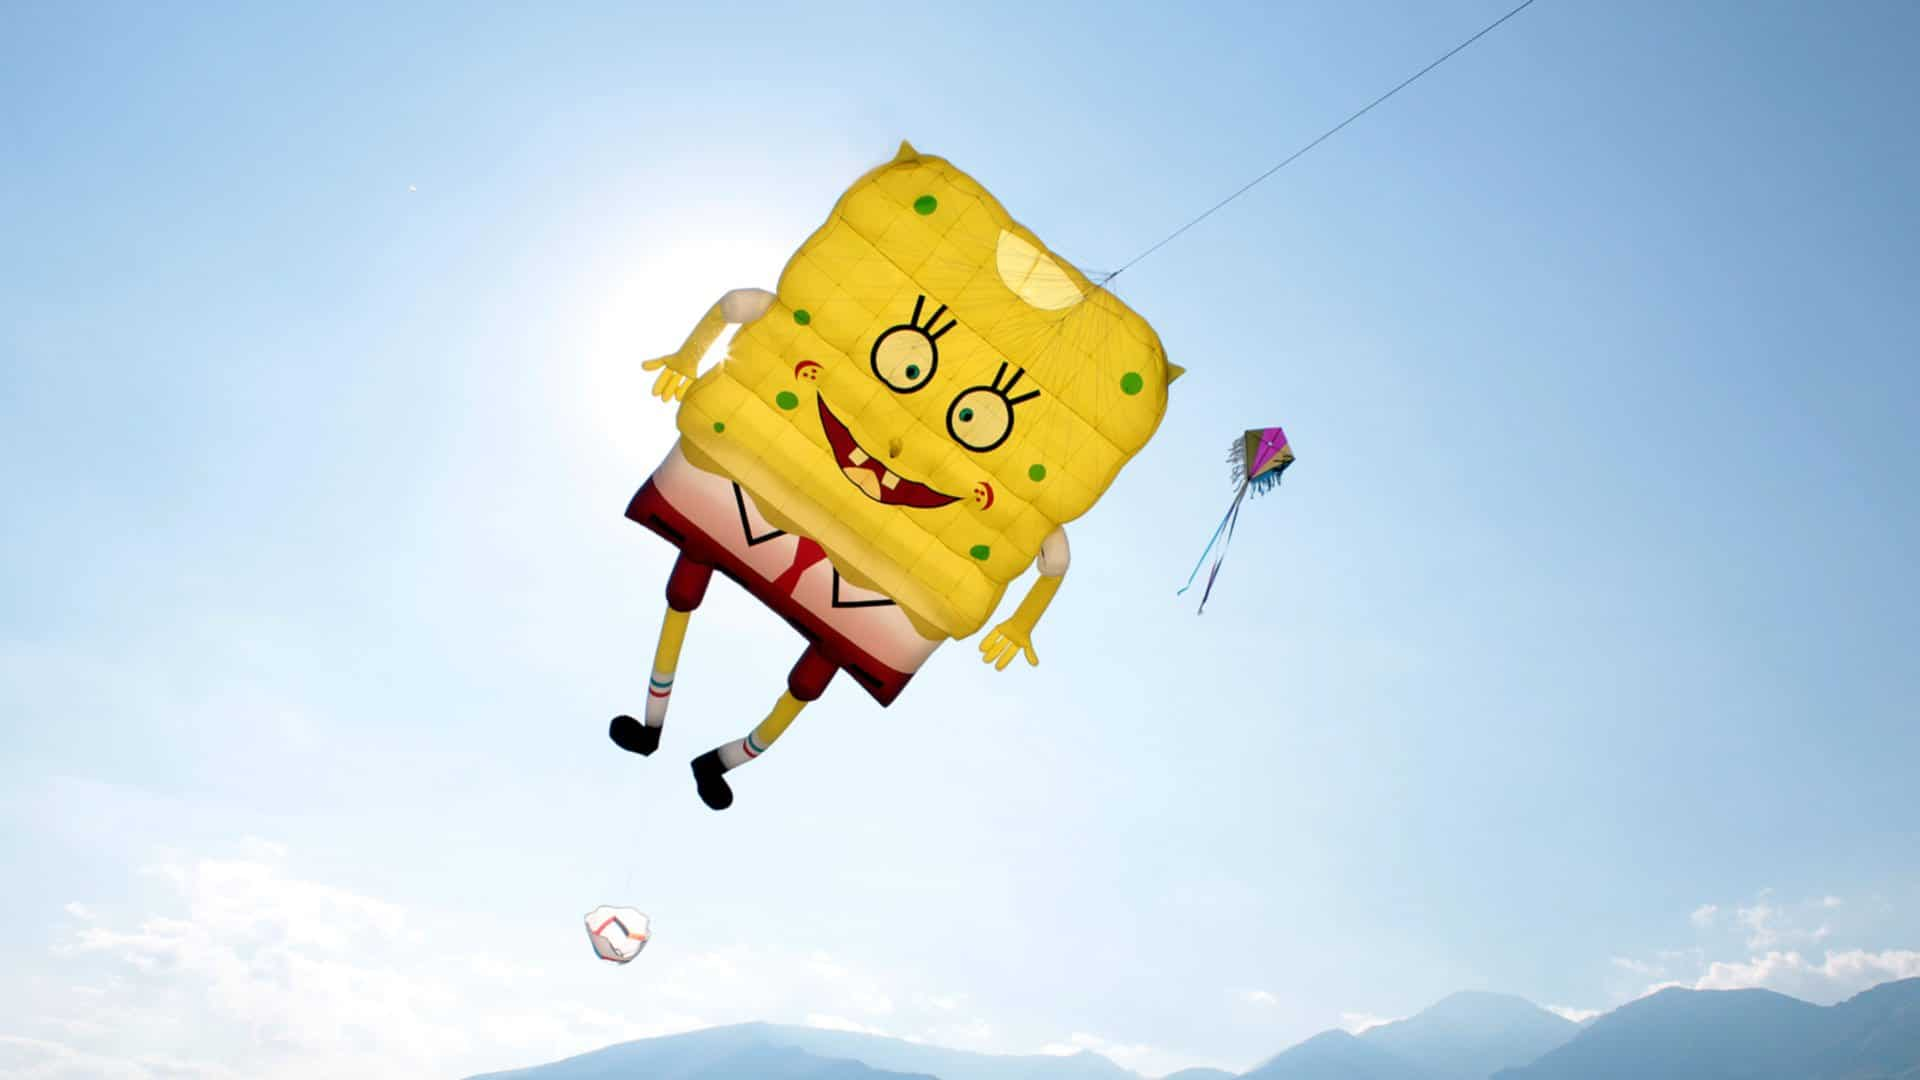 giant spongebob kite